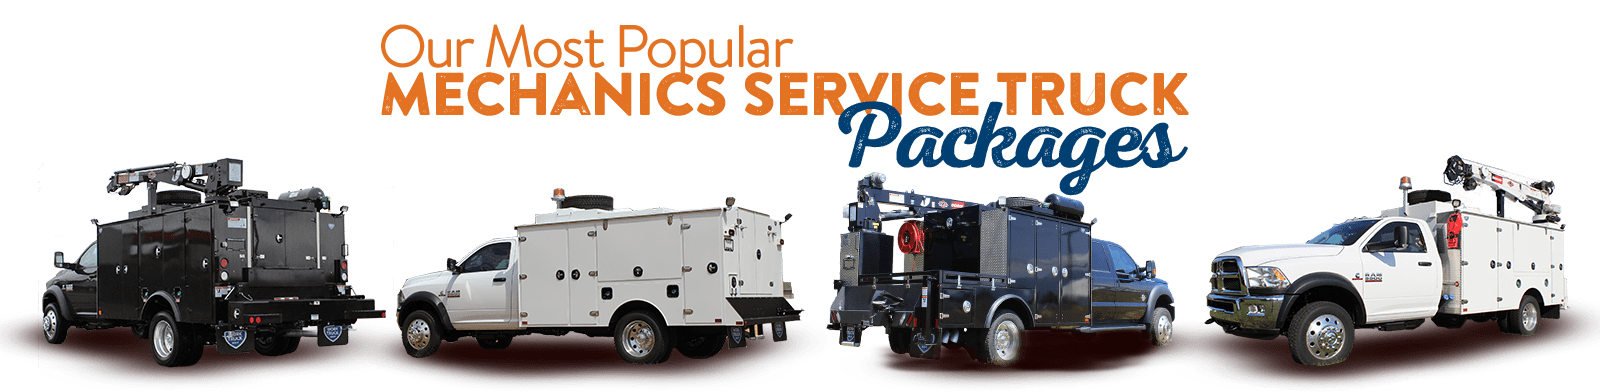 mechanics service trucks for sale ontario